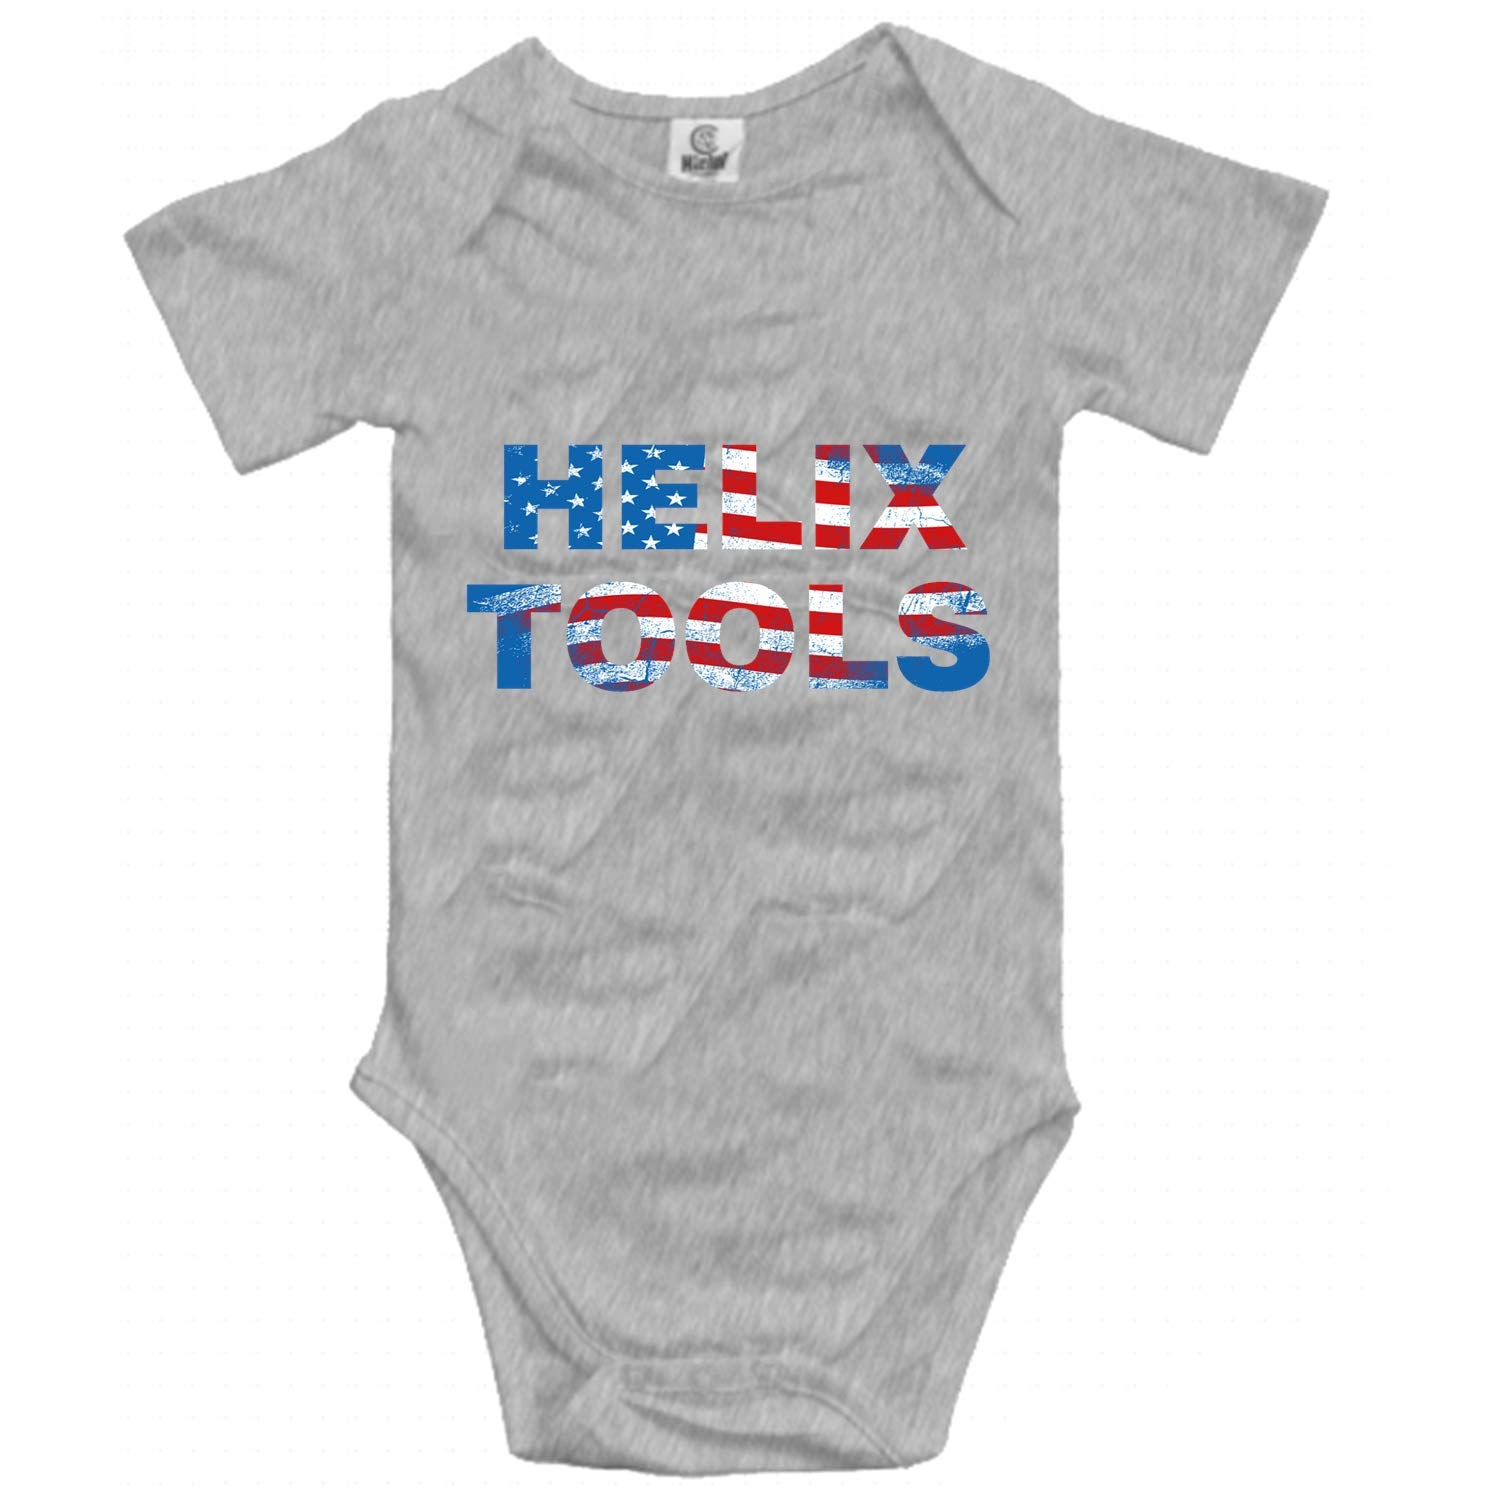 Helix Tools Cute Novelty Funny Infant One-Piece Baby Bodysuit